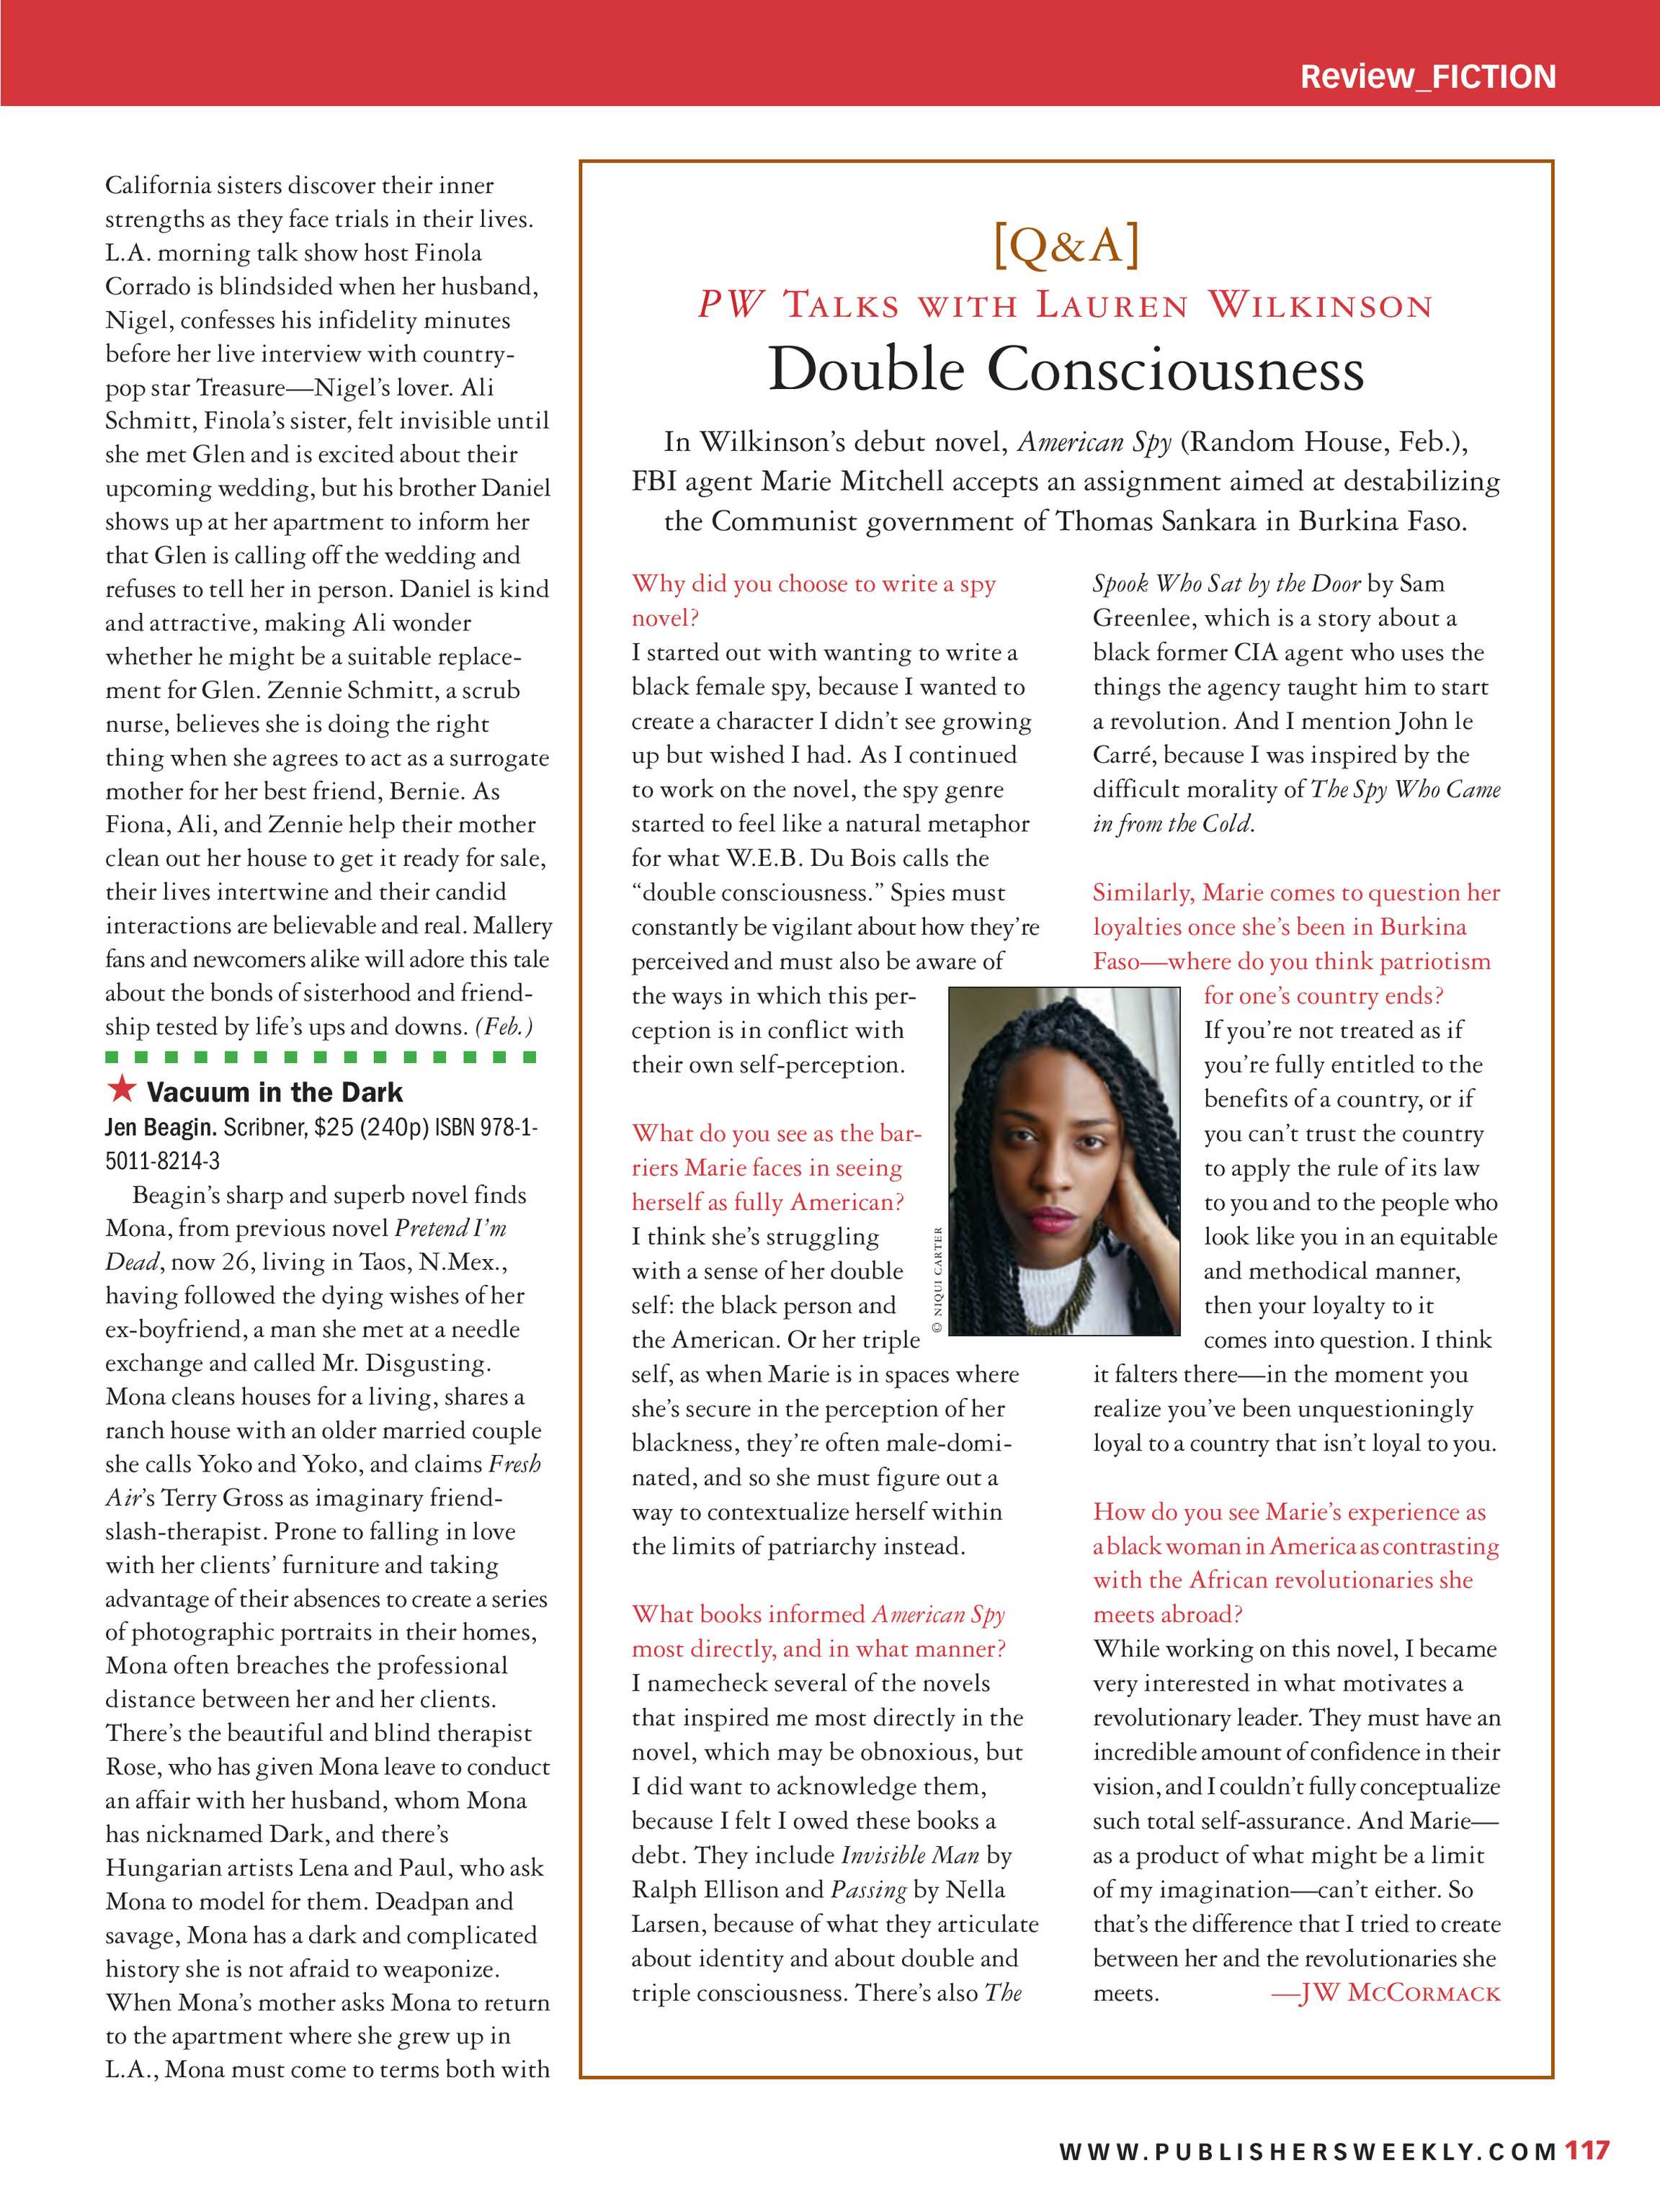 Publishers Weekly - December 10, 2018 - page 117